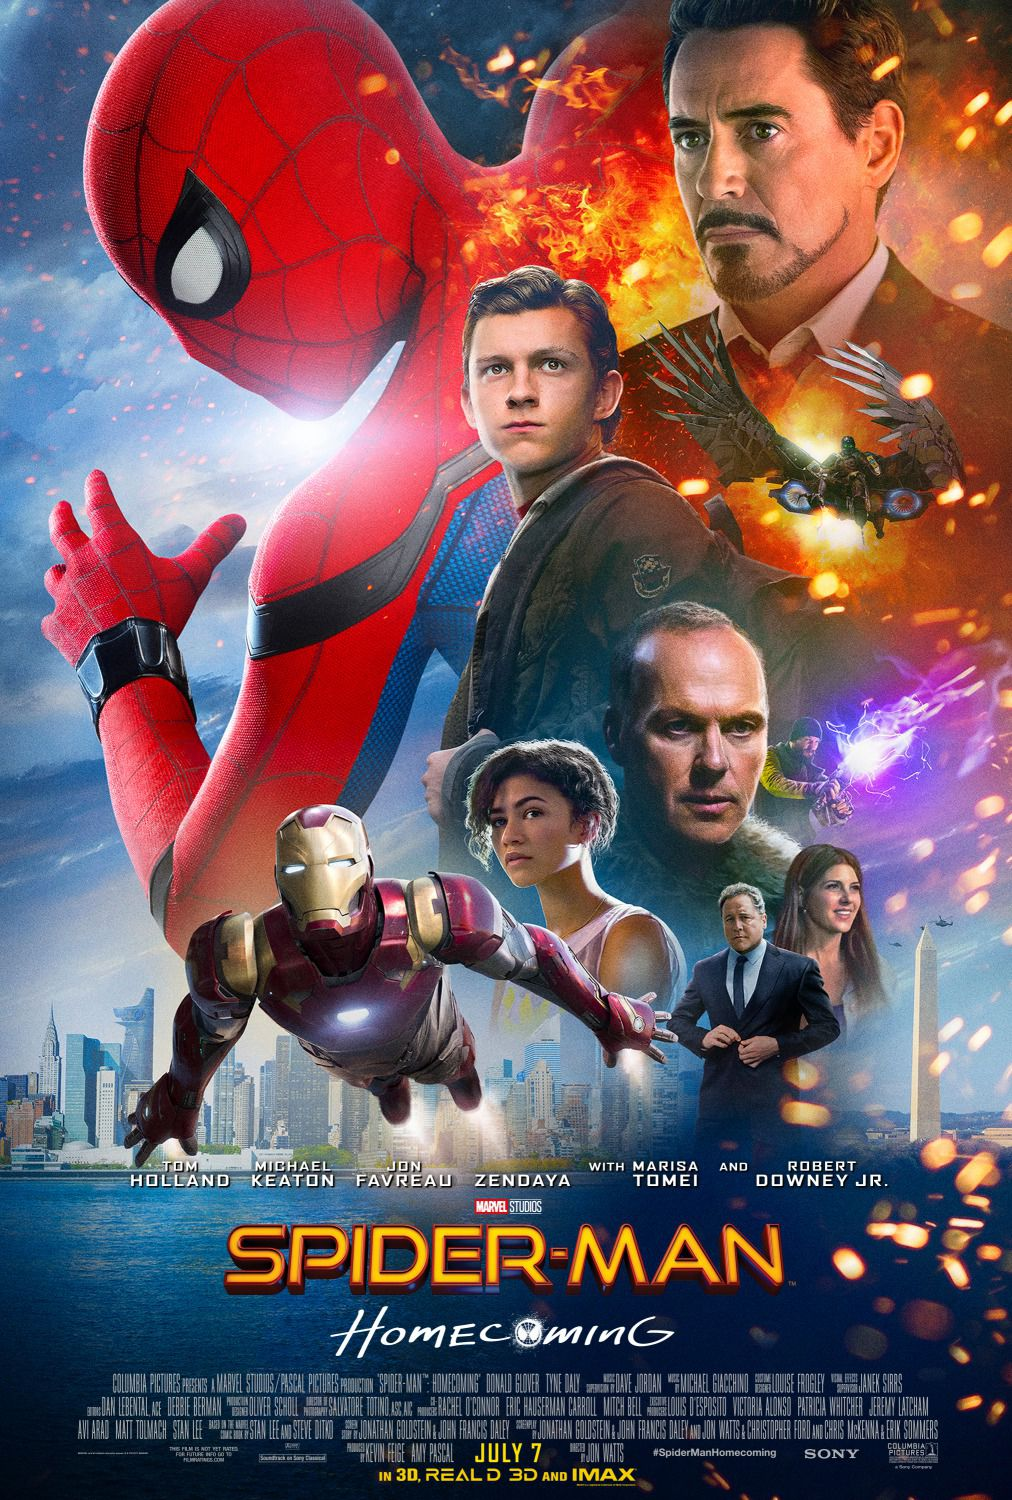 Spiderman homecoming - poster